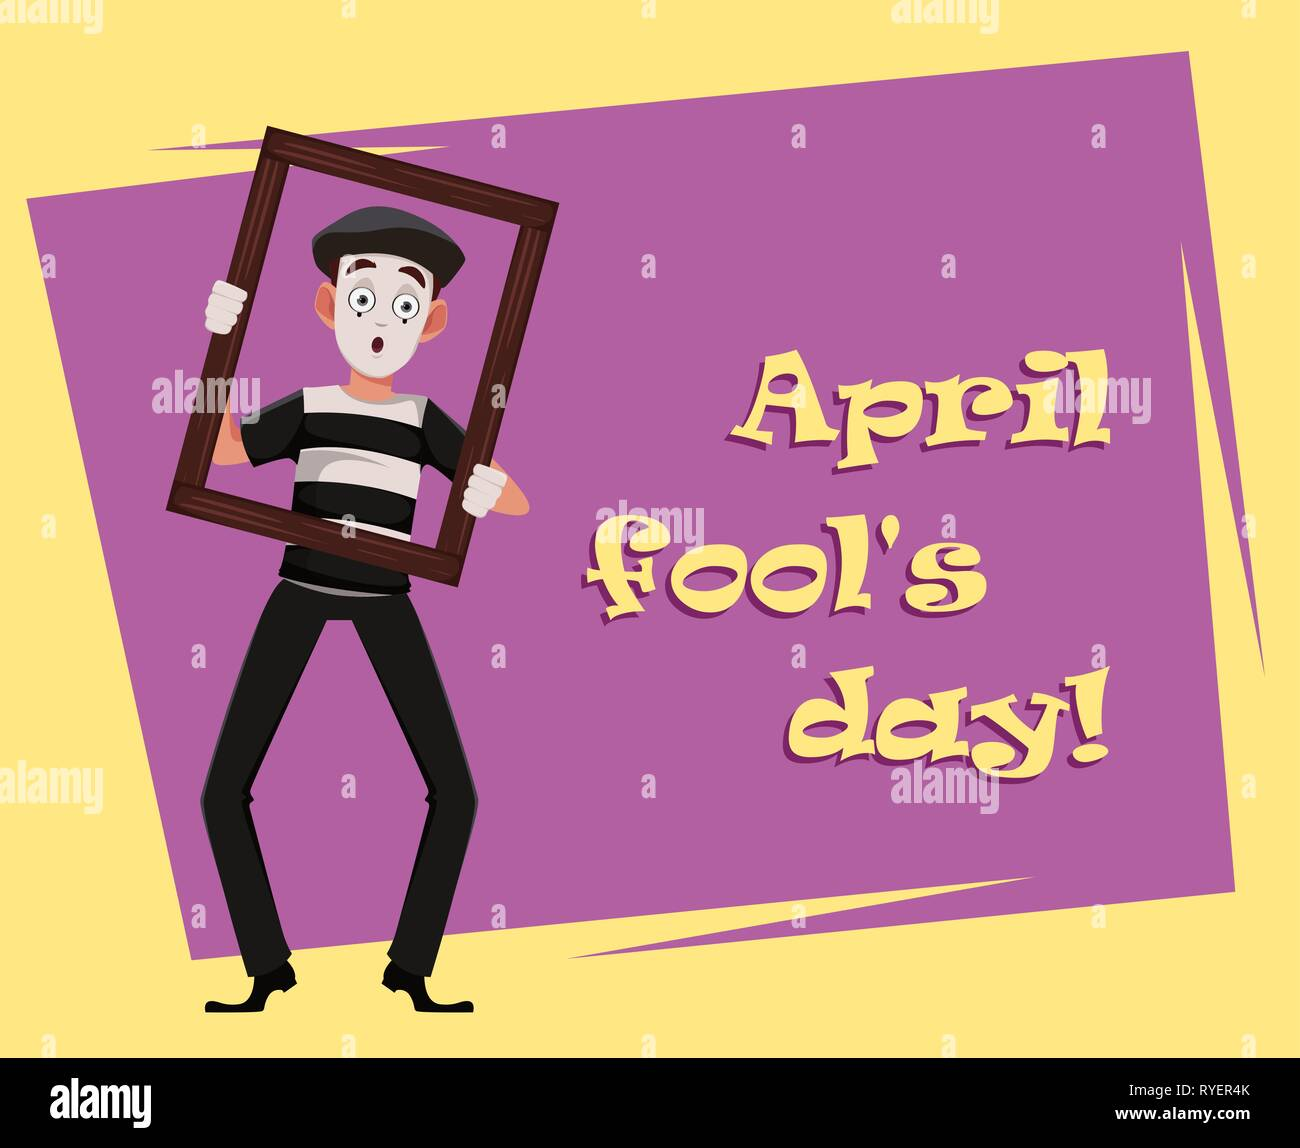 April Fool's Day greeting card with mime holding picture frame. Funny cartoon character performing pantomime. Flat style. Vector illustration - Stock Image